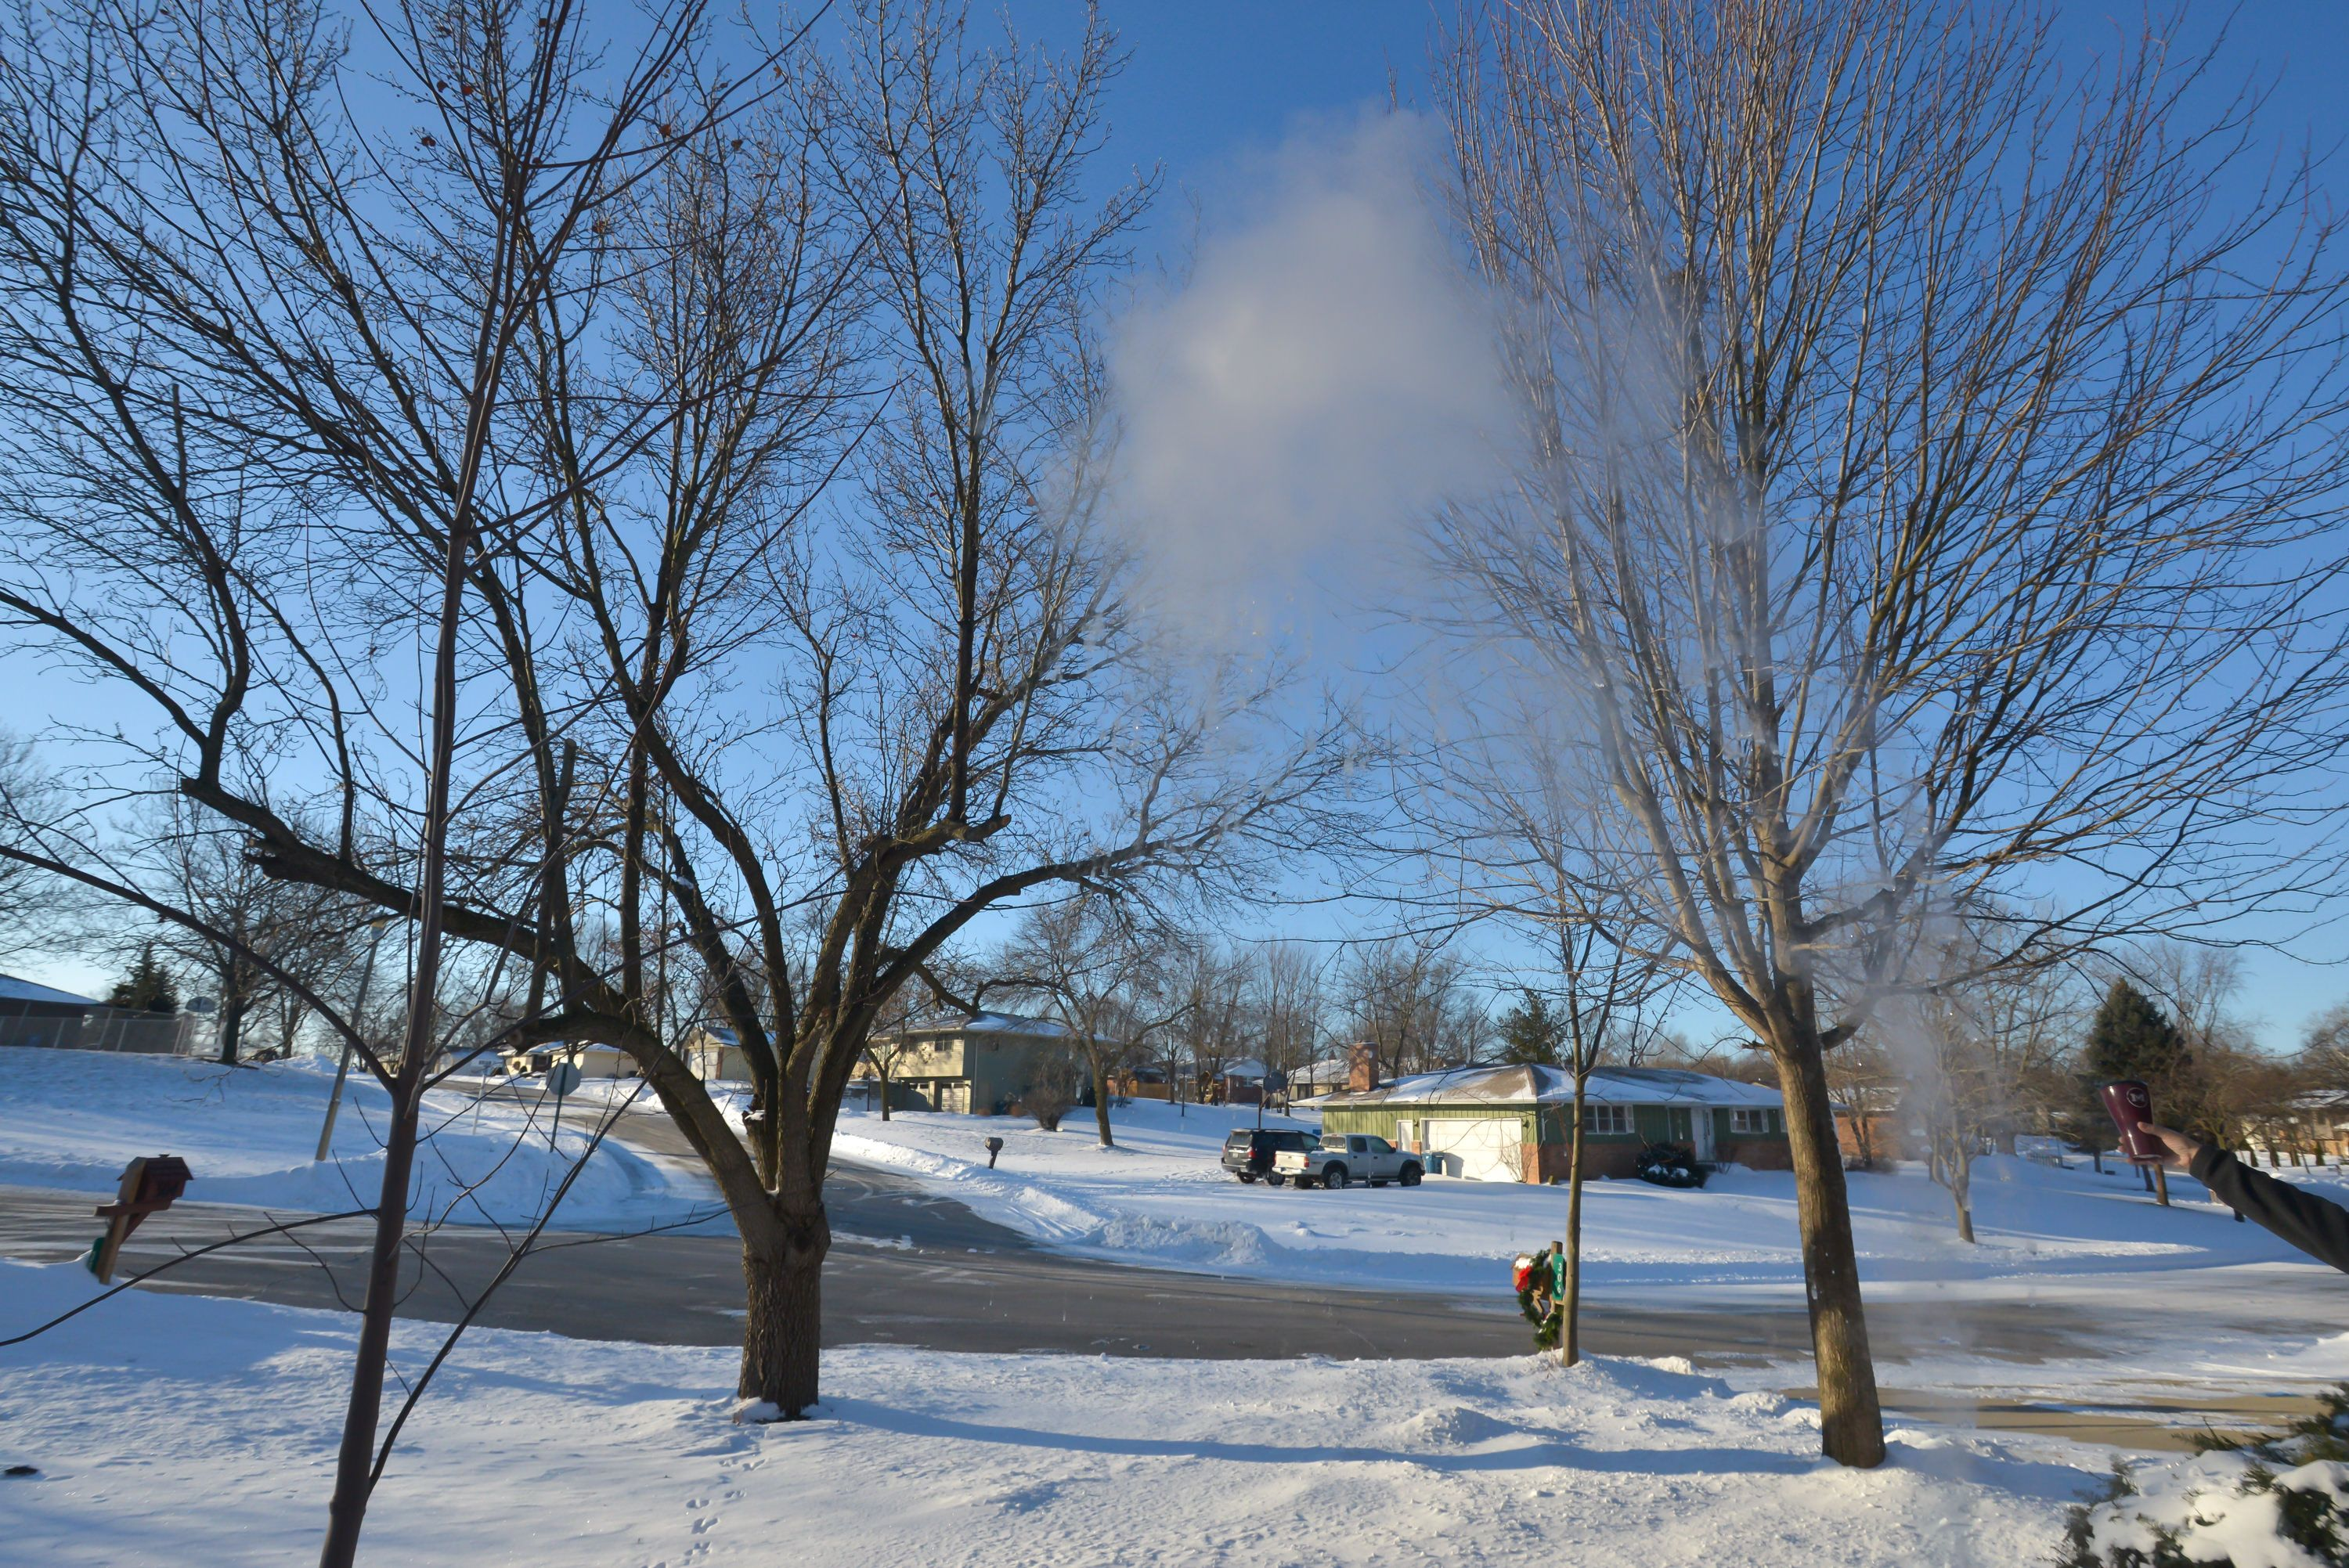 State Farm Free Quote Snow Cloud  Throw Boiling Water Into The Air On A Very Cold